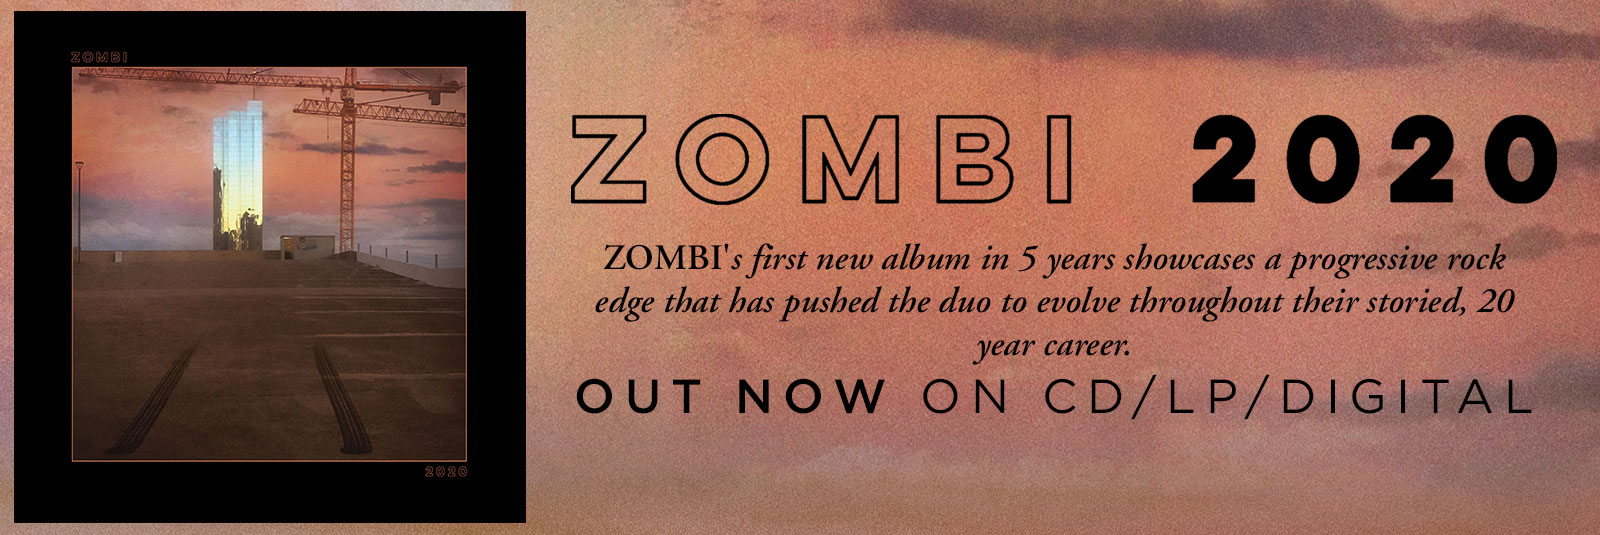 zombi-2020-instrumental-hard-rock-relapse-out-now